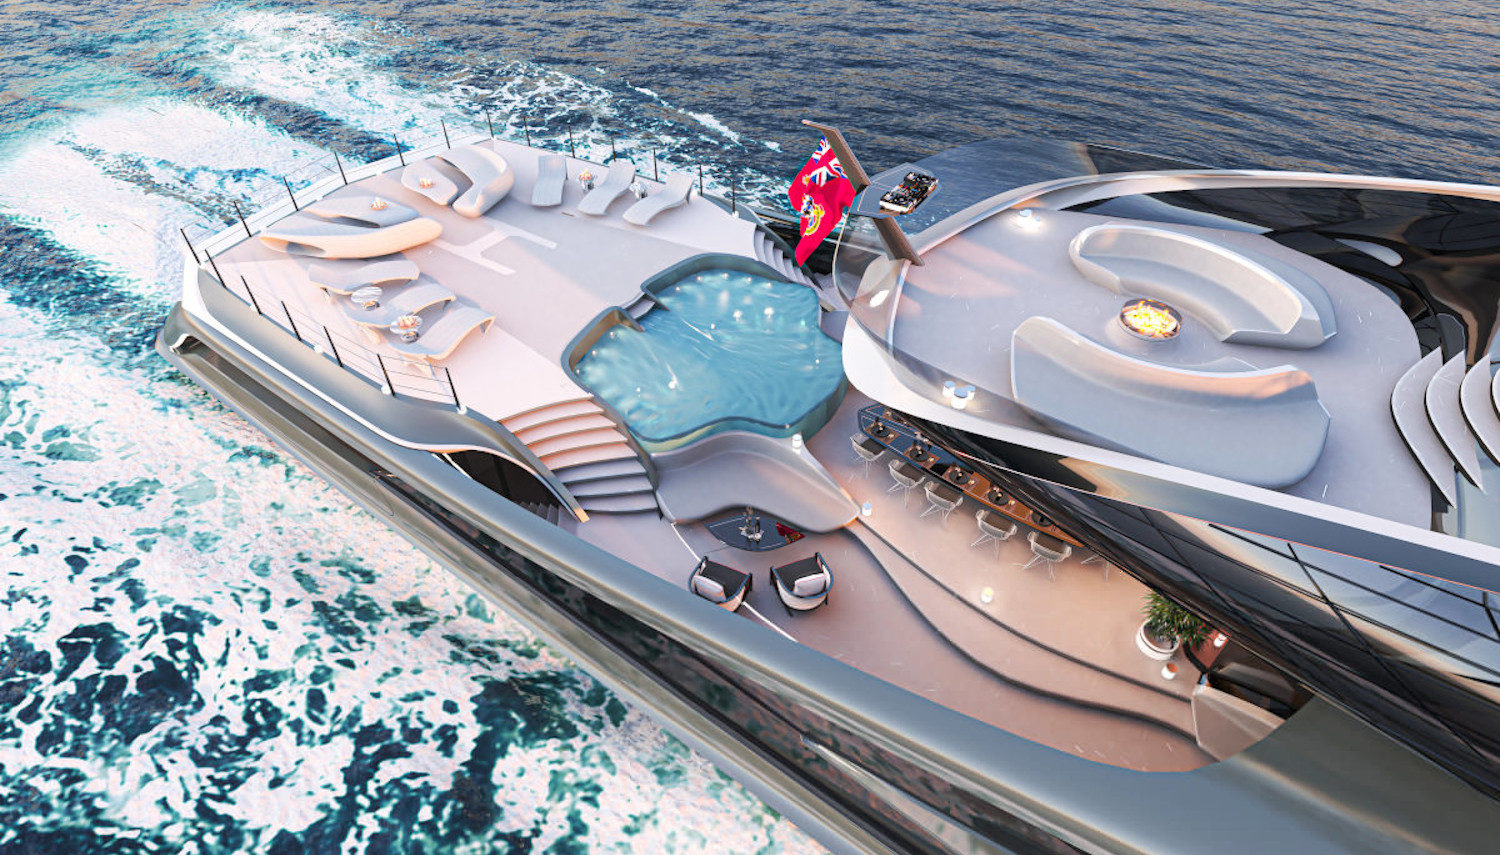 Vripack - yacht concepts - Futura - Yacht with zero footprint